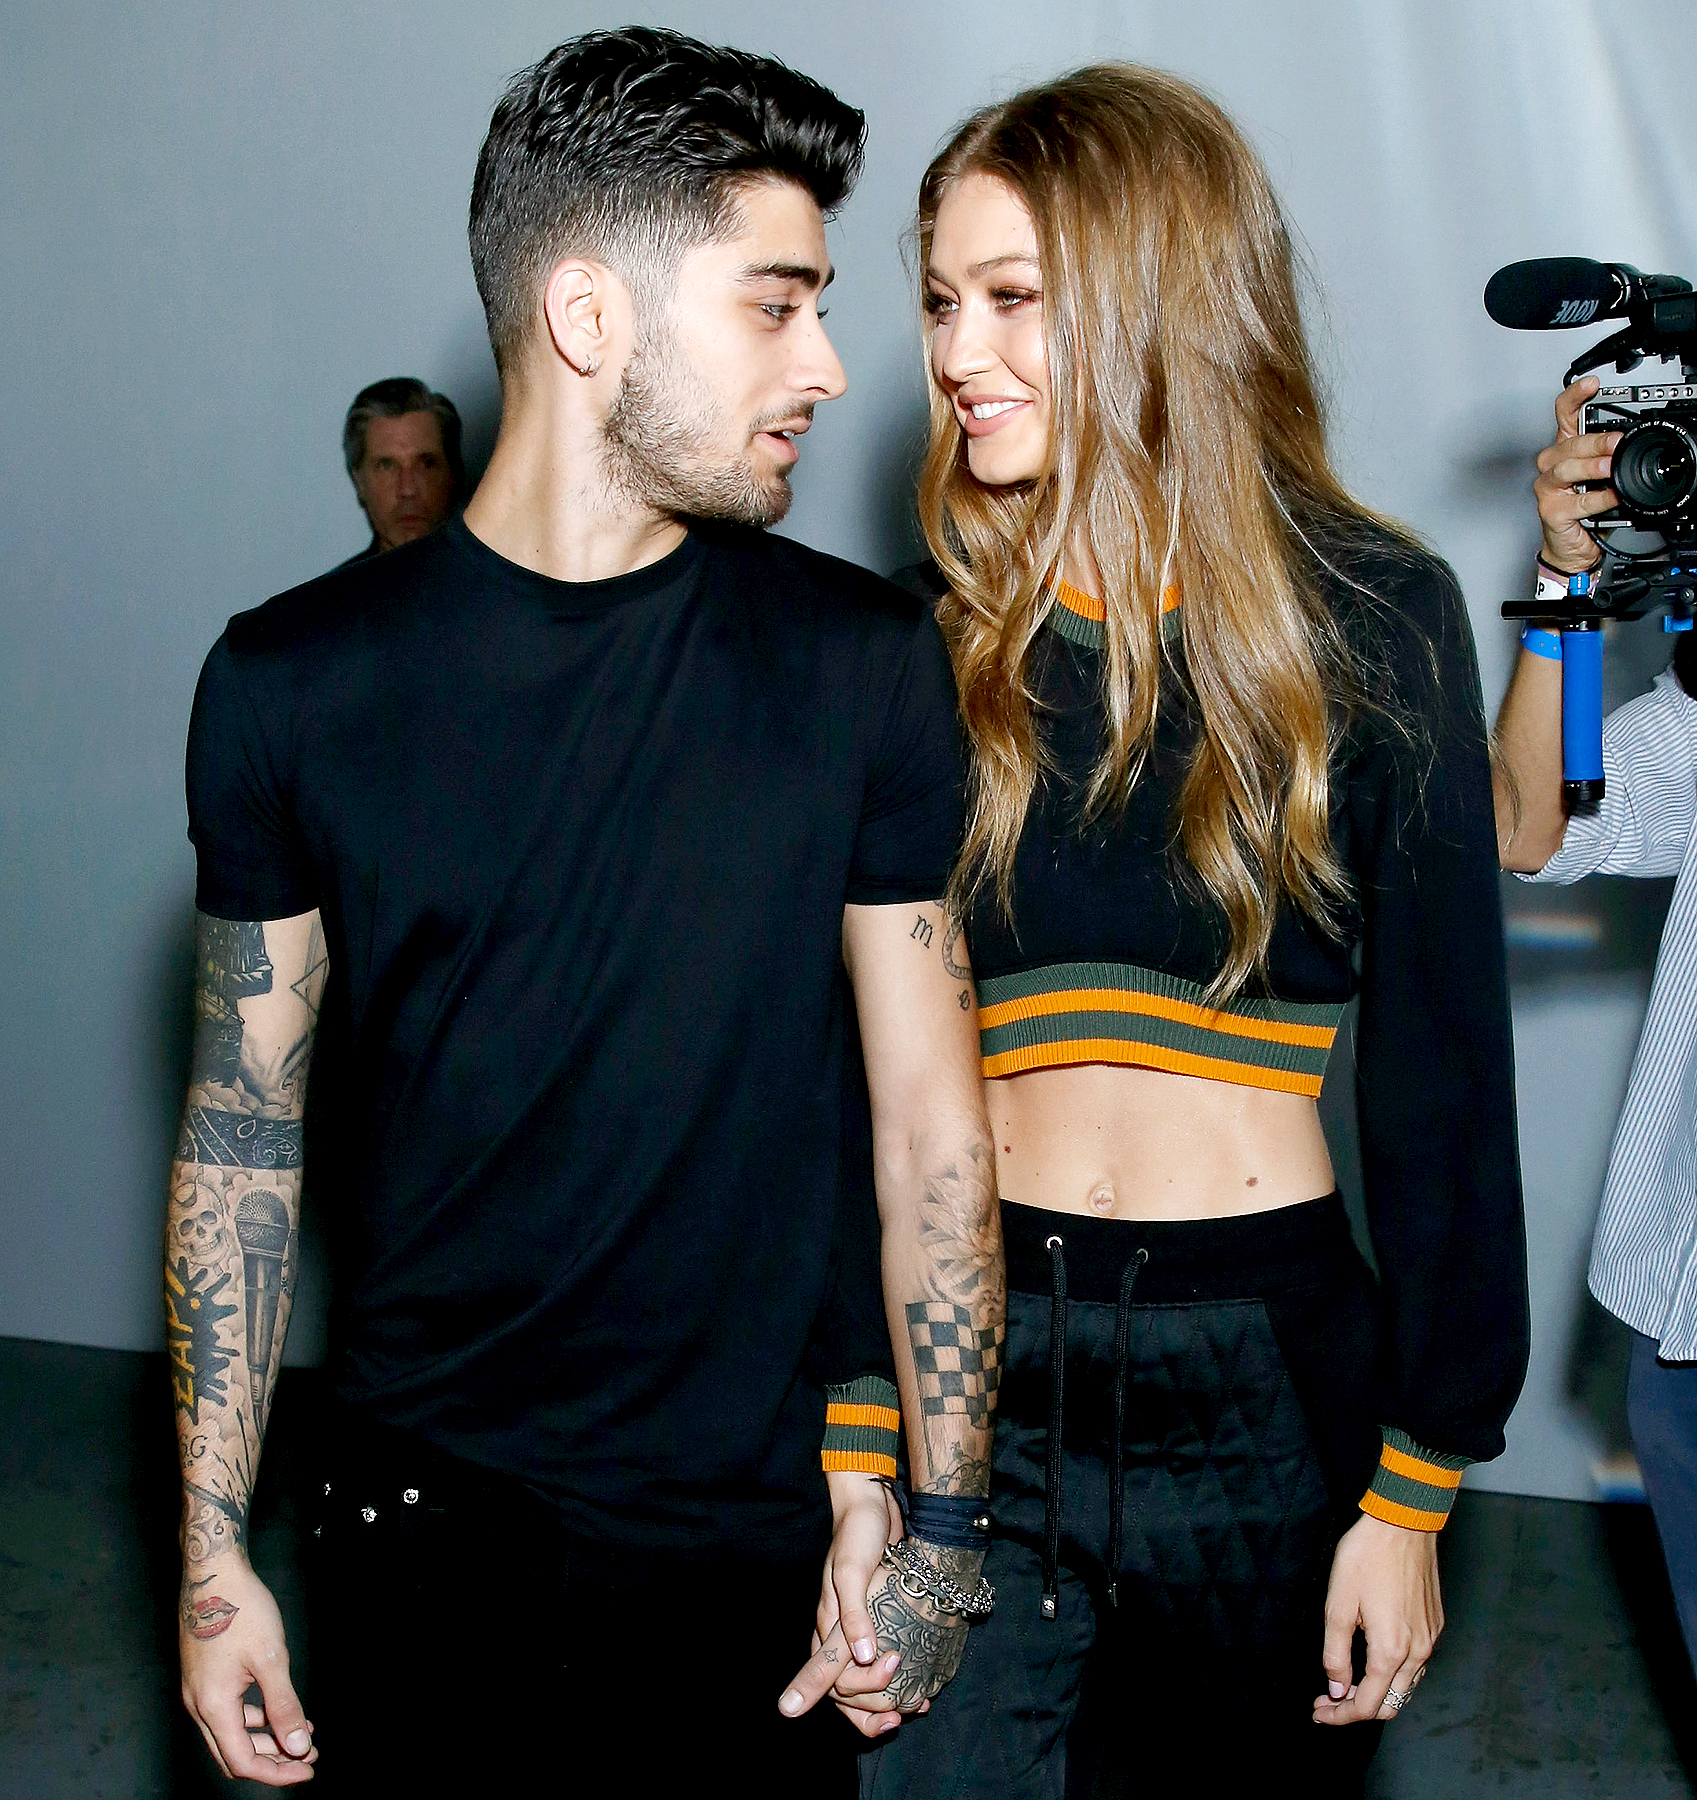 Zayn Malik and Gigi Hadid attend the Versus Versace show during London Fashion Week Spring/Summer collections 2016/2017 on September 17, 2016 in London, United Kingdom.